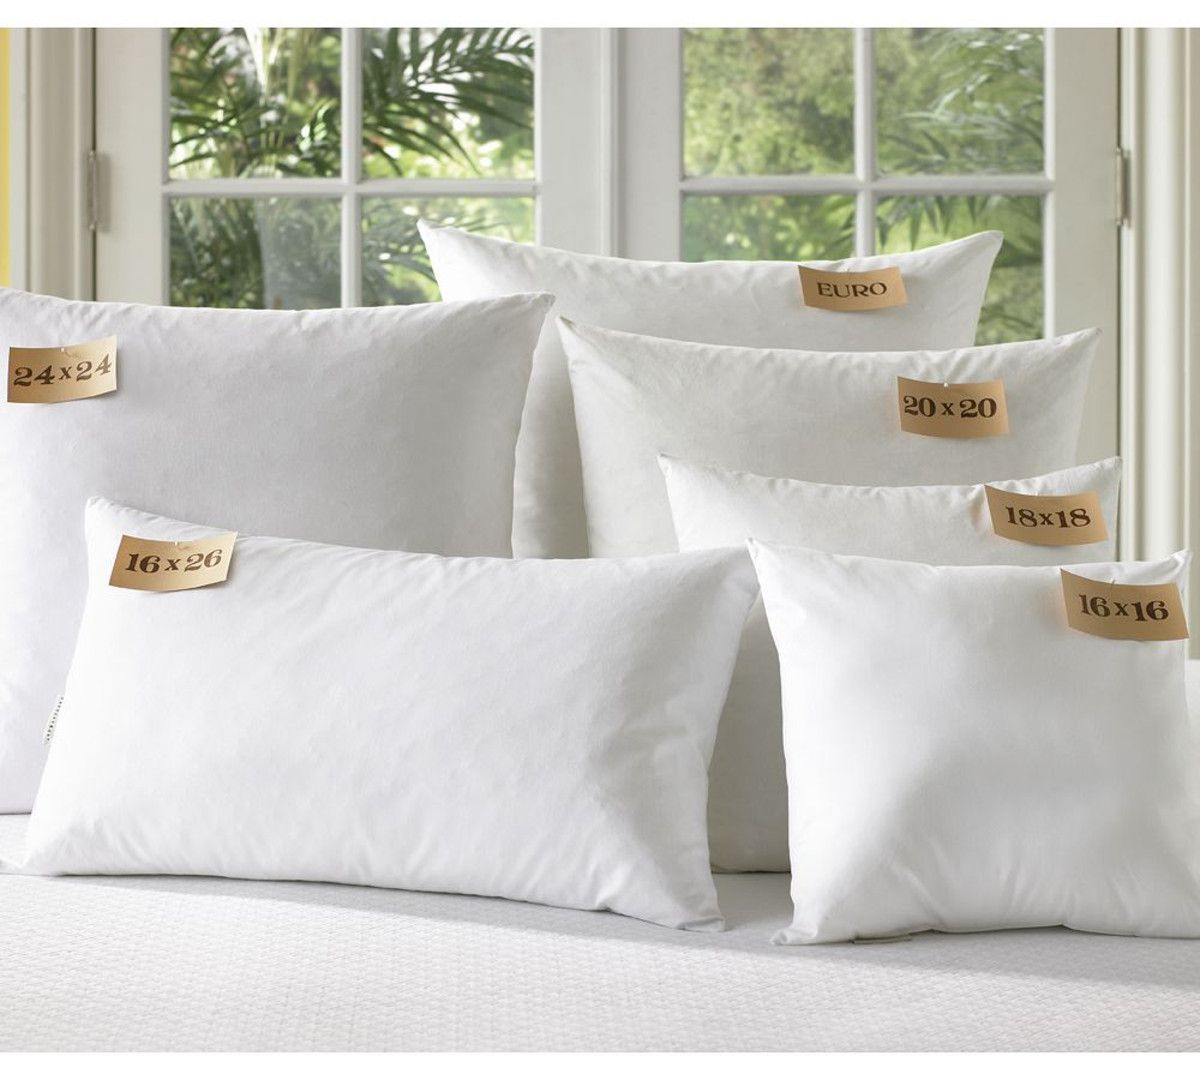 Pottery Barn Pillow Inserts Fair Featherdown Blend Pillow & Cushion Inserts  Pottery Barn Au Review